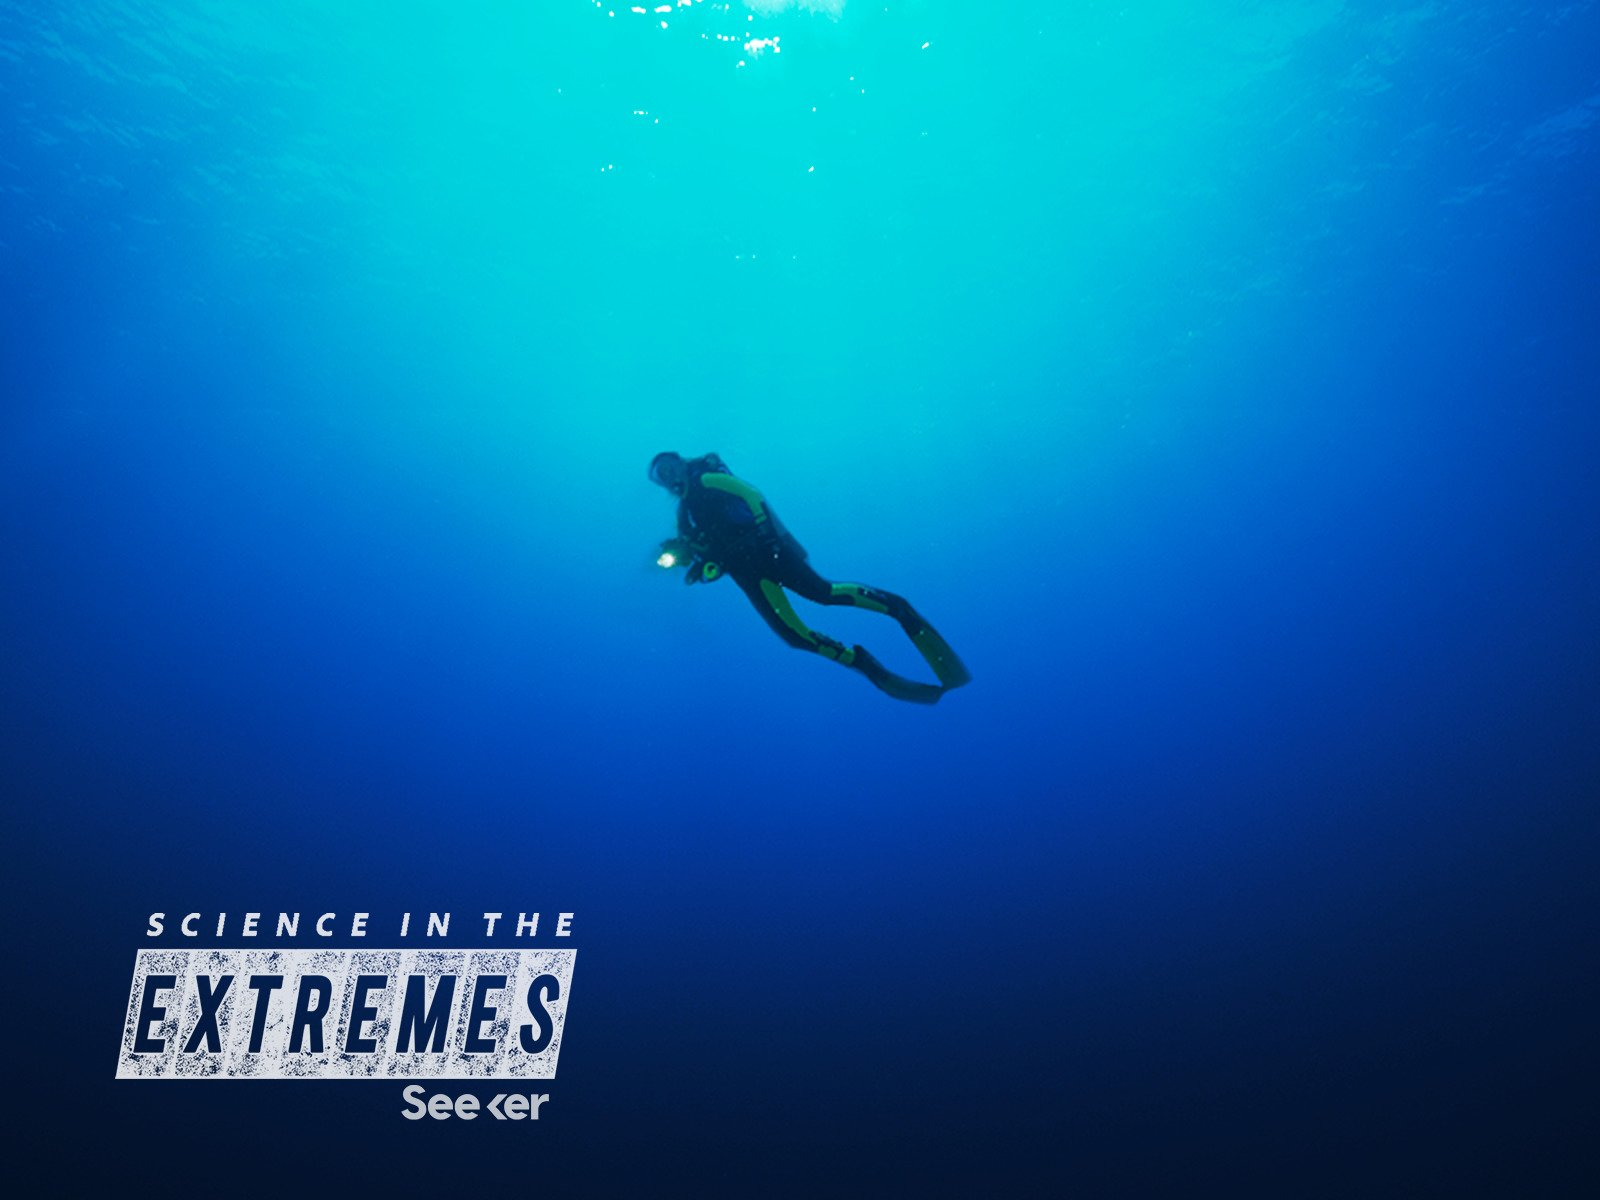 Science in the Extremes - Season 1